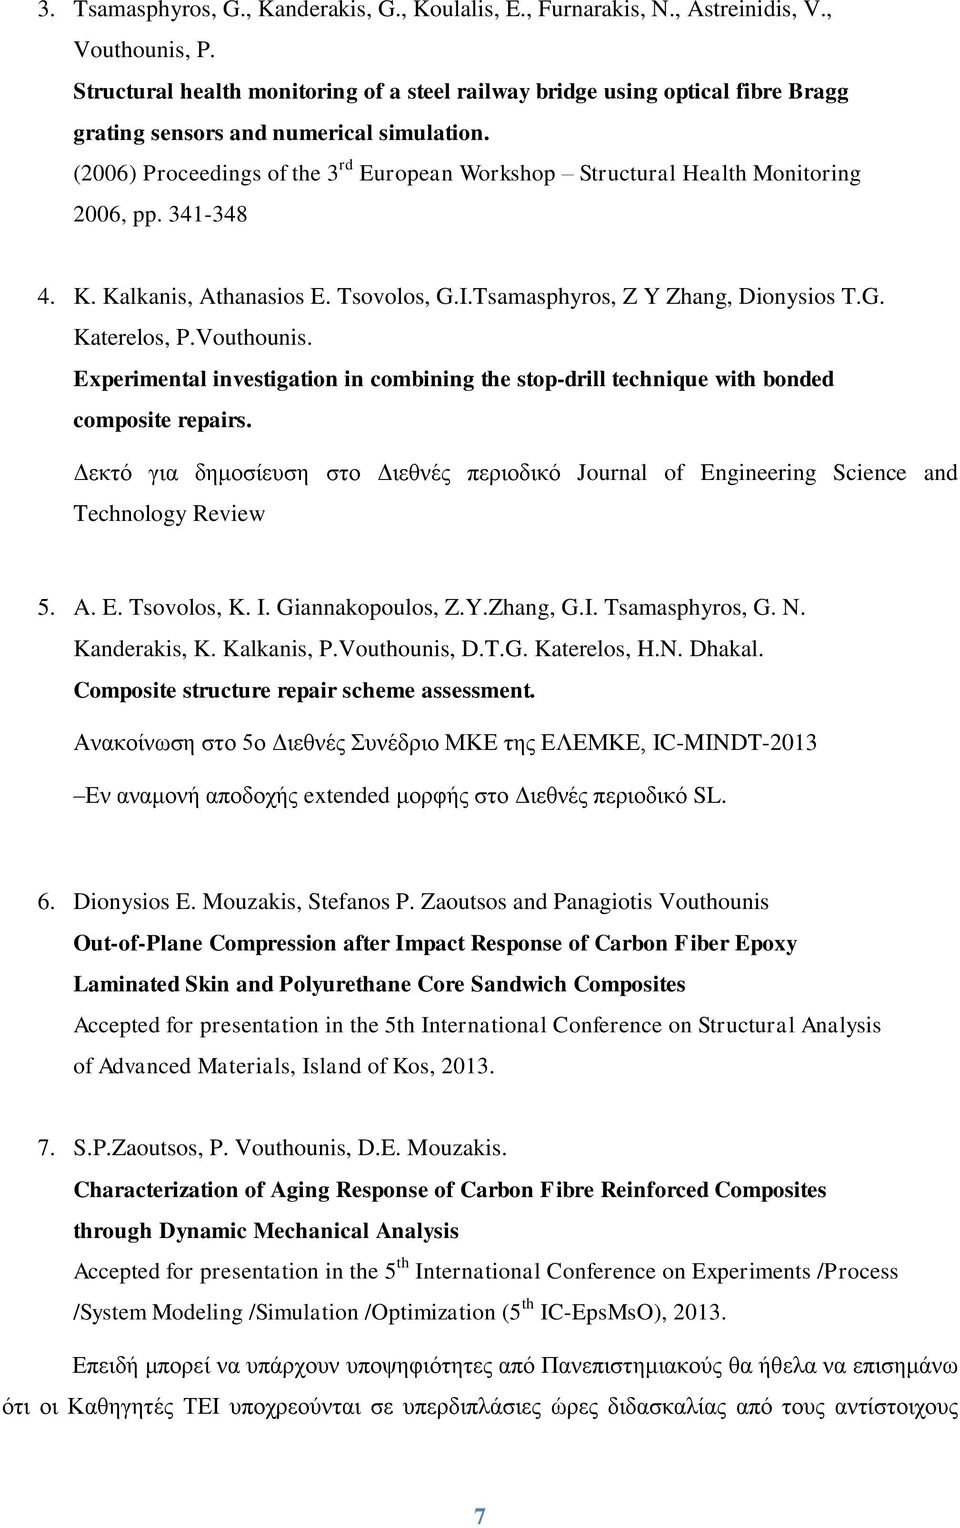 (2006) Proceedings of the 3 rd European Workshop Structural Health Monitoring 2006, pp. 341-348 4. K. Kalkanis, Athanasios E. Tsovolos, G.I.Tsamasphyros, Z Y Zhang, Dionysios T.G. Katerelos, P.